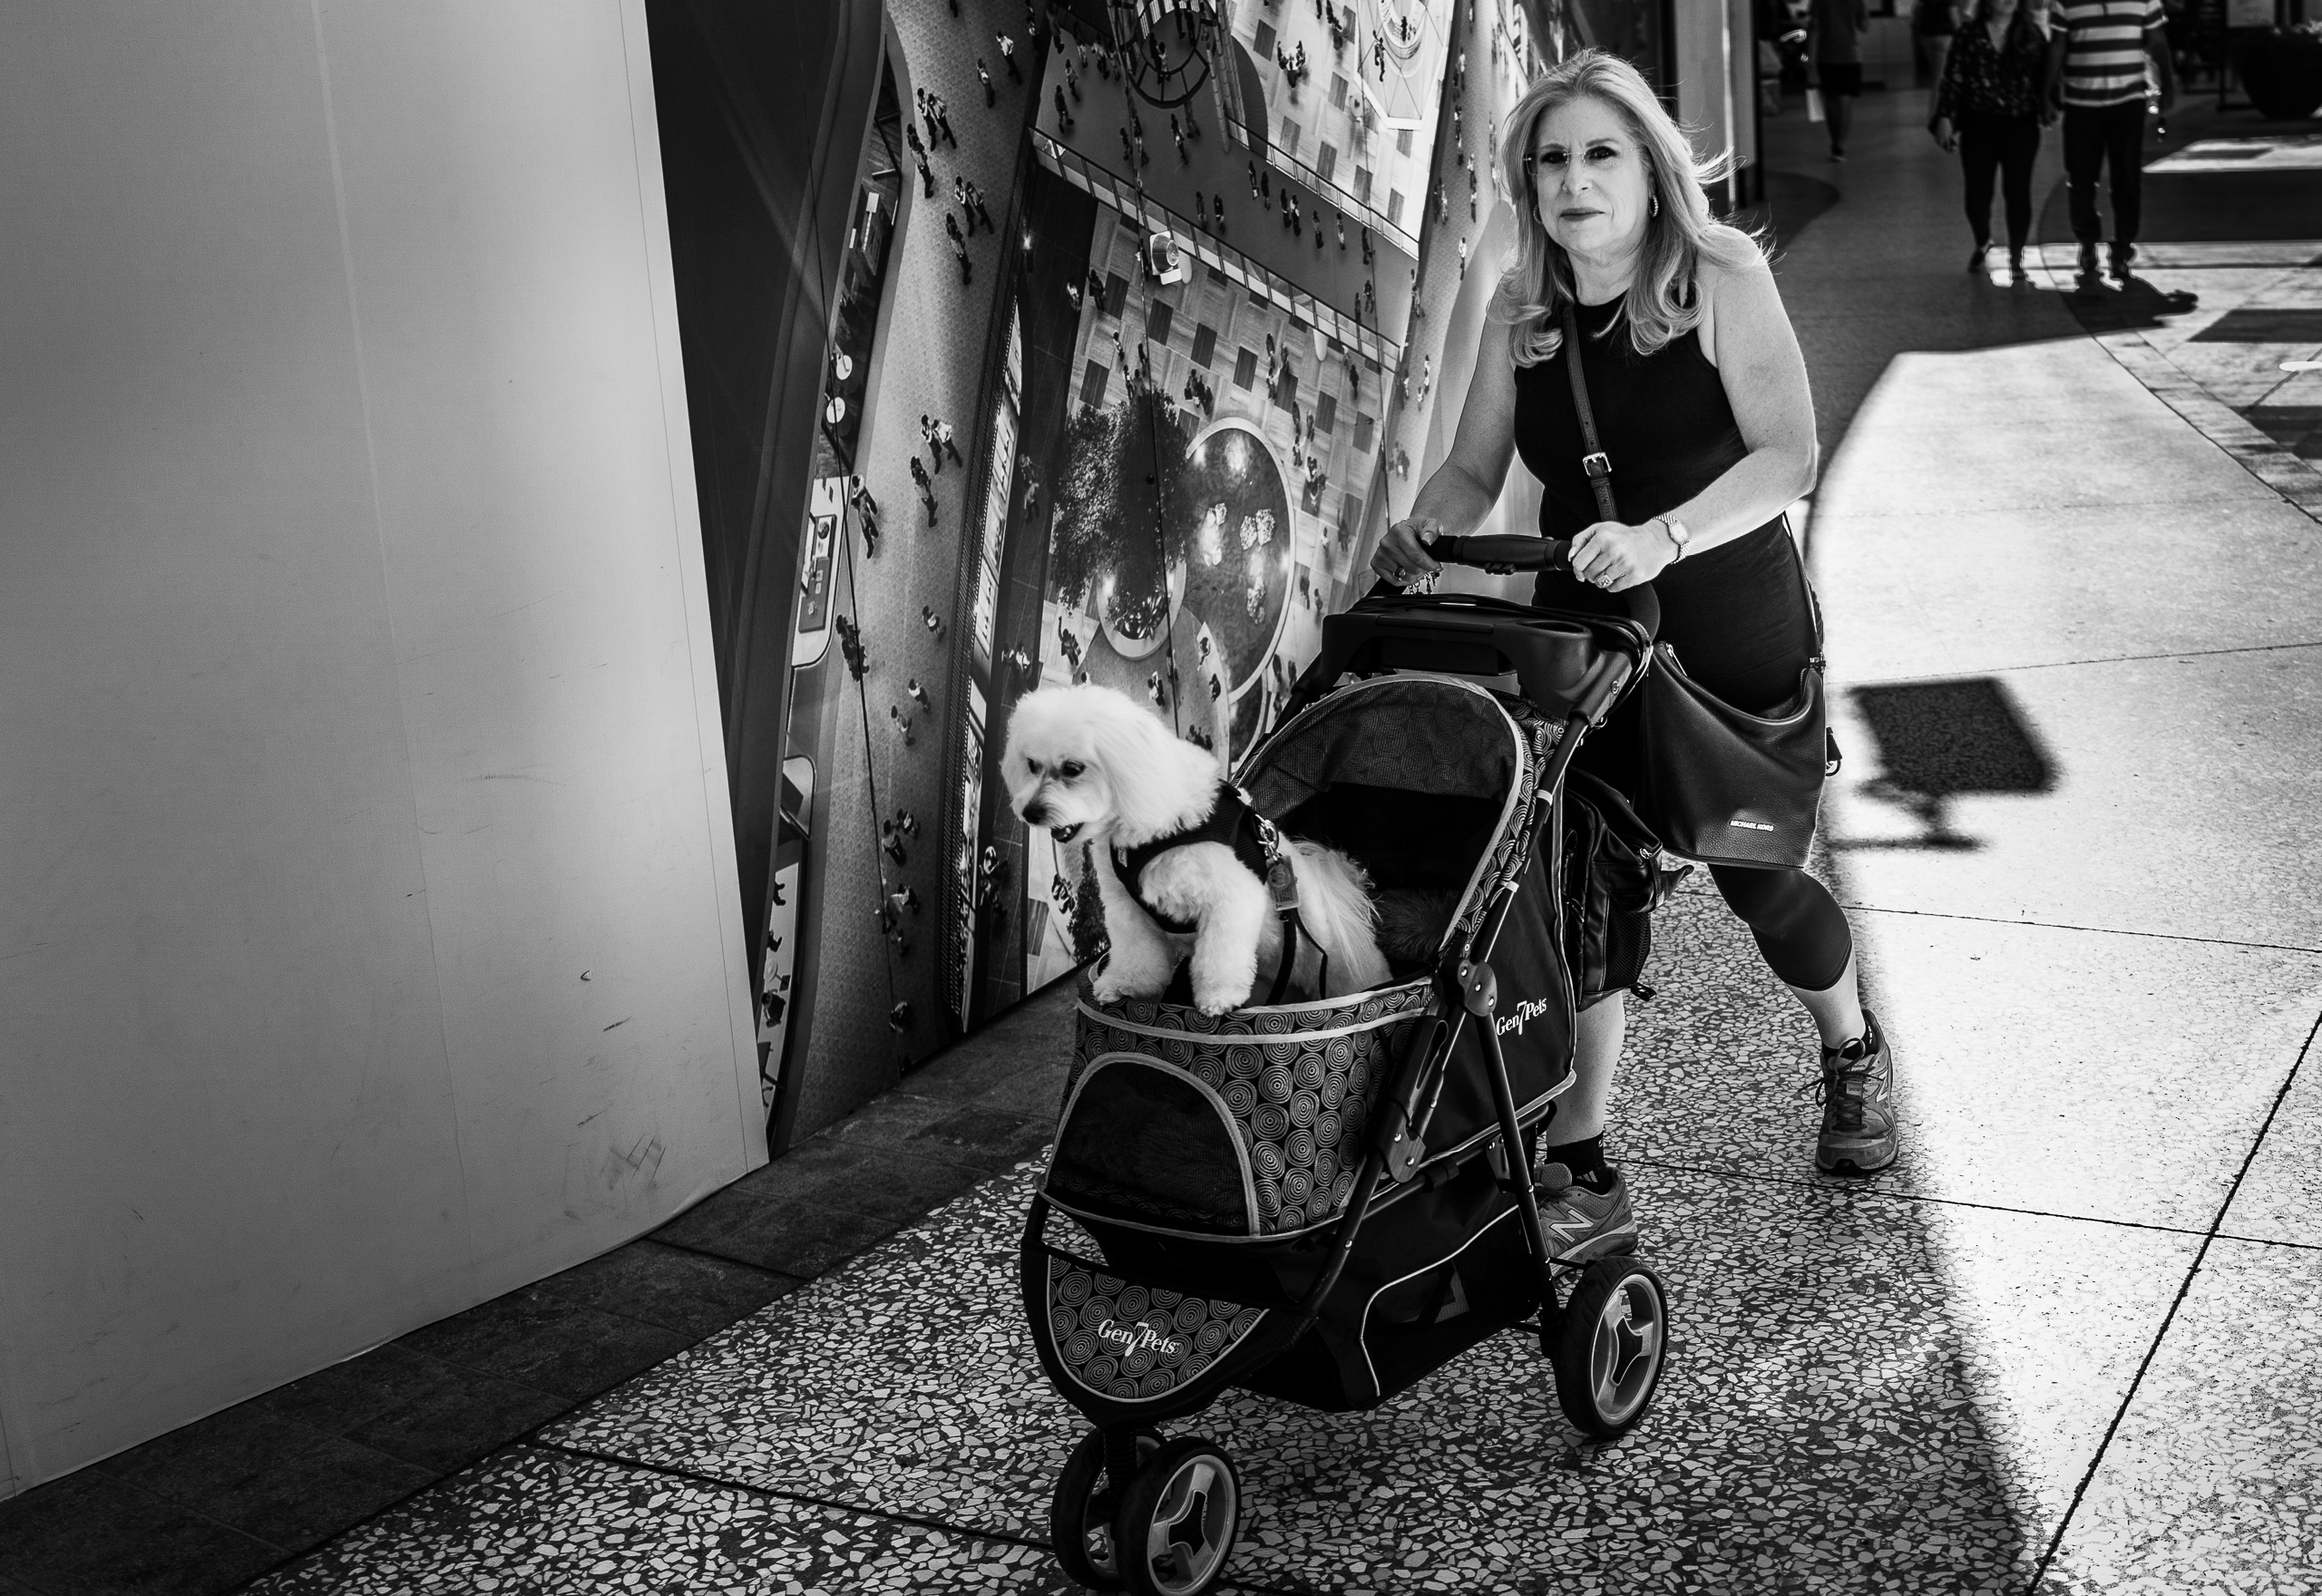 a woman in the Century City shopping  mall pushes her poodle through the mall with a Gen 7 Pets pet stroller